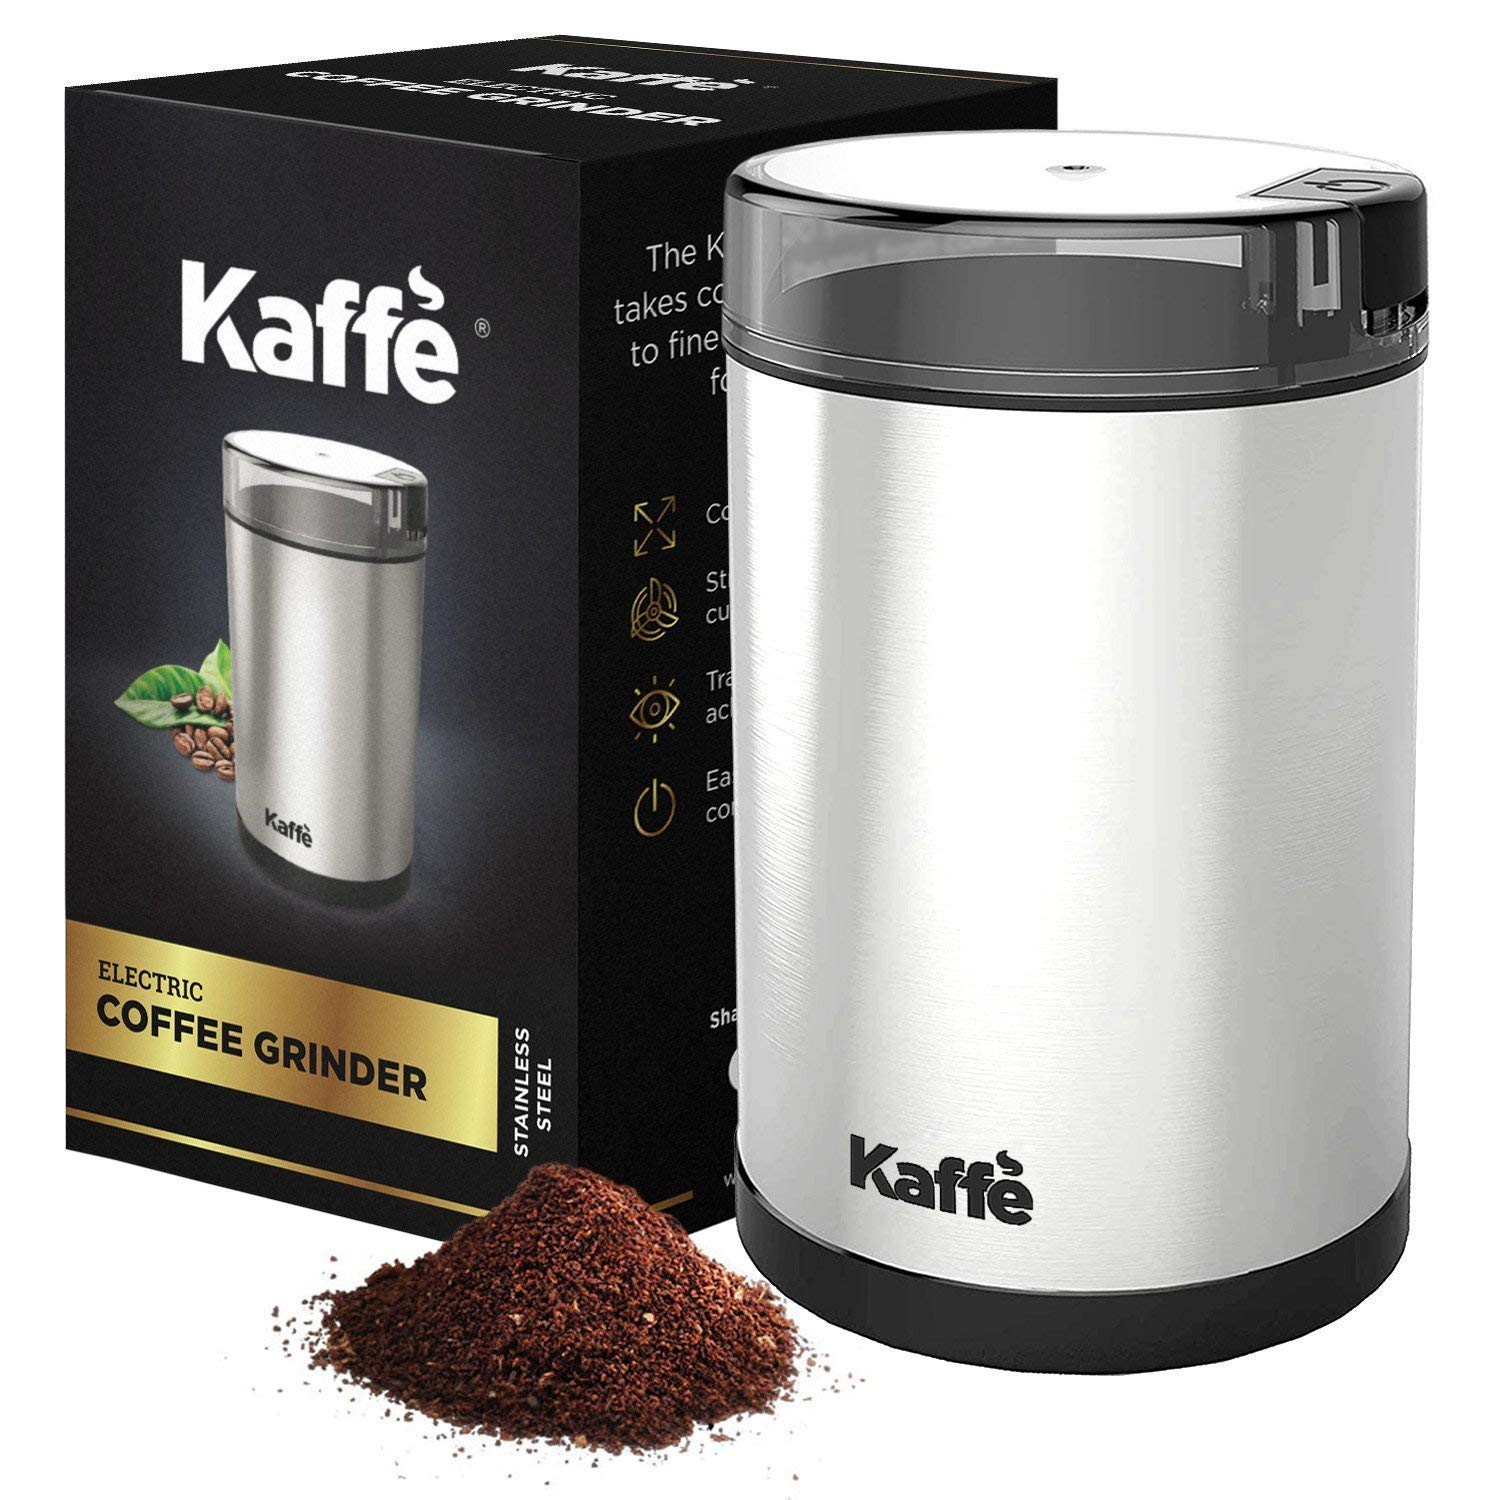 KF2020 Electric Coffee Grinder by Kaffe - Stainless Steel 2.5oz Capacity with Easy On/Off Button by Kaffe Products